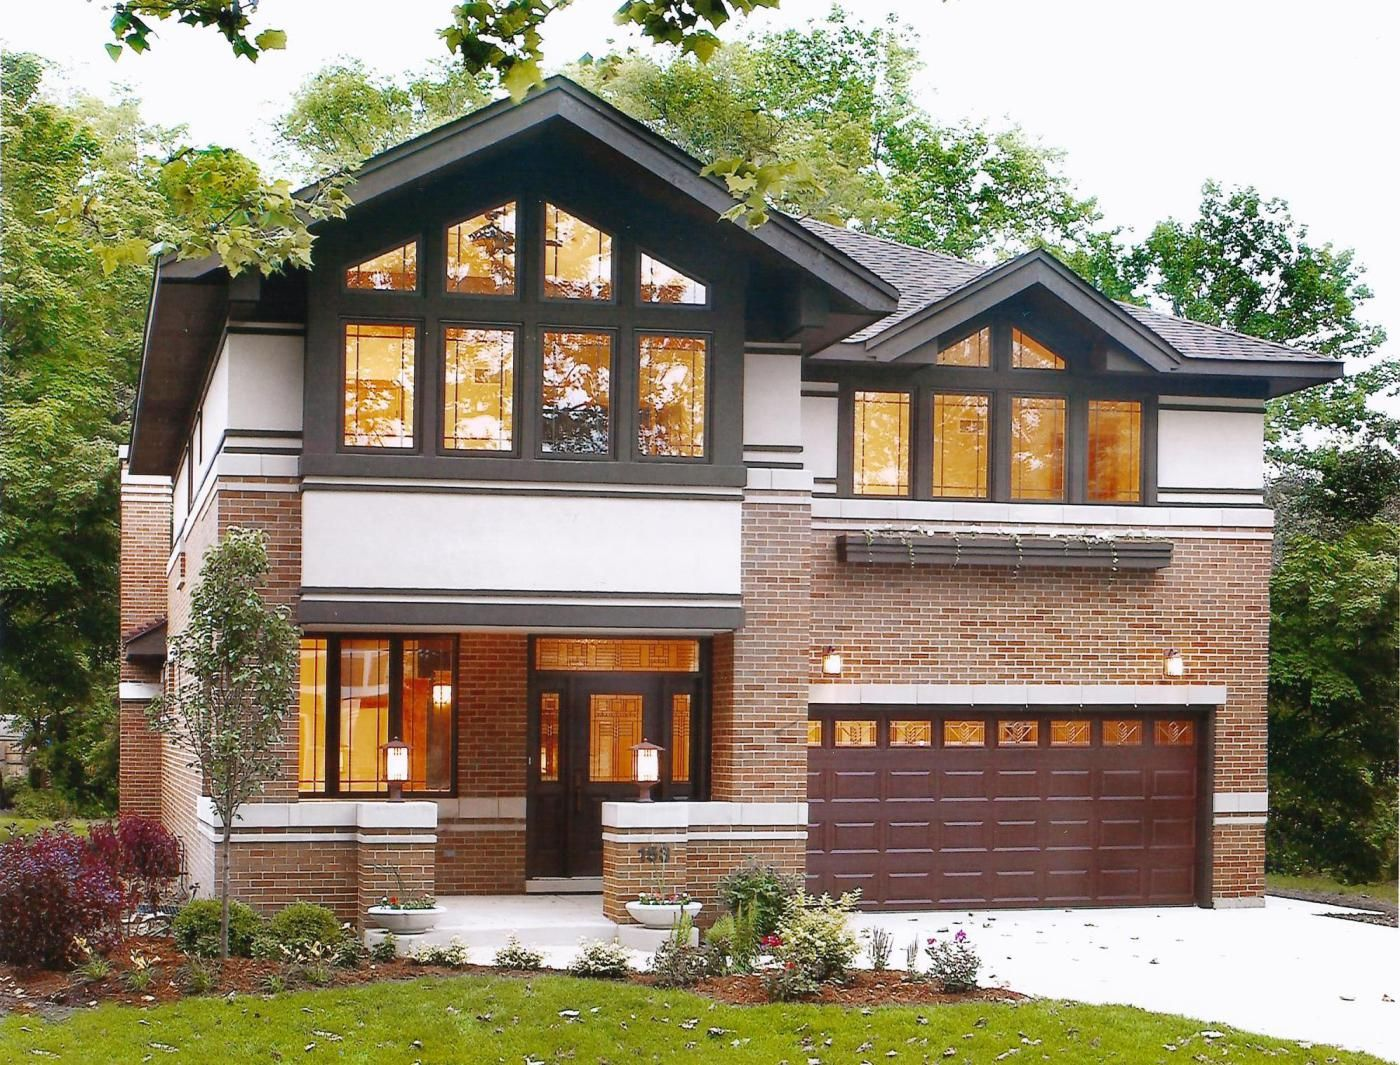 Frank lloyd wright inspired walkout ranch west chicago